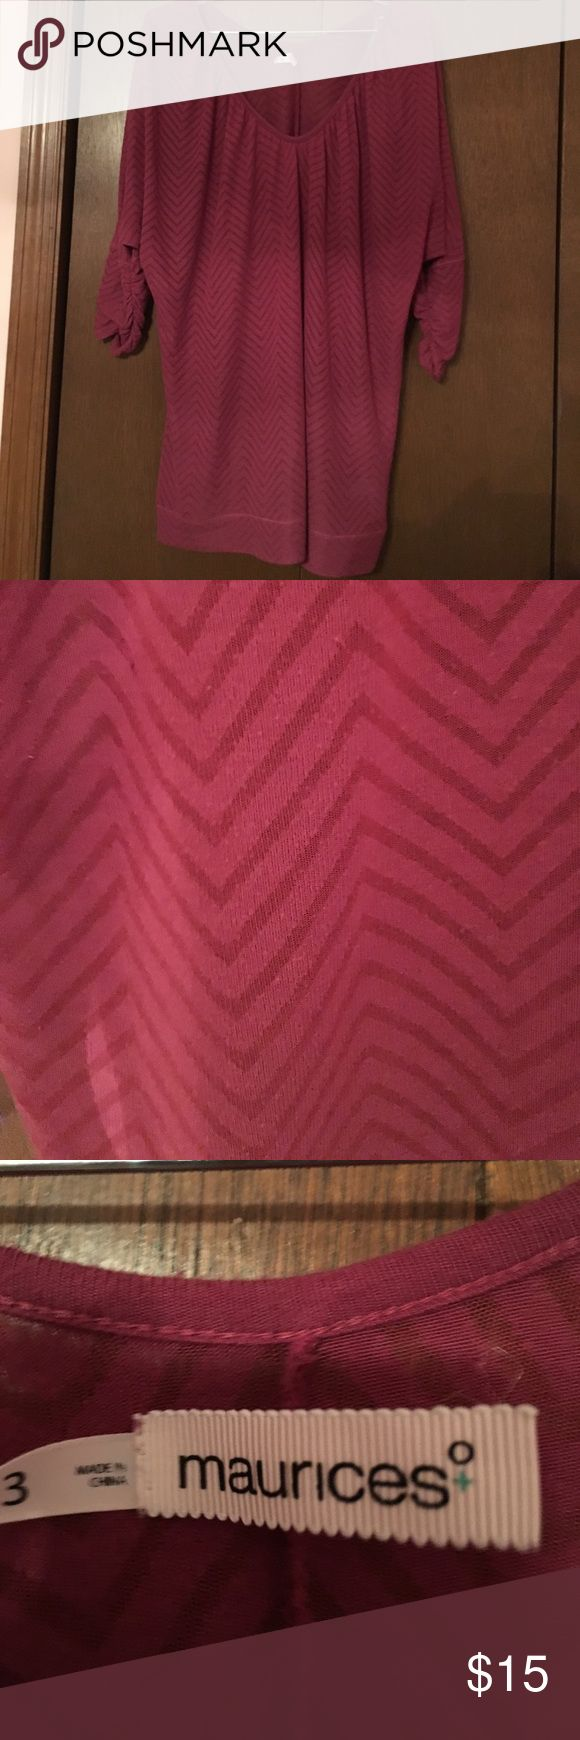 EUC cranberry Maurices 3x chevron top This three quarter length sleeve cranberry top from Maurices looks great with skinny jeans or leggings. Has a chevron print and gathers slightly at the elbows. Barely sheer. I usually wore a grey cami under it. Size 3x. Maurices Tops Tees - Long Sleeve